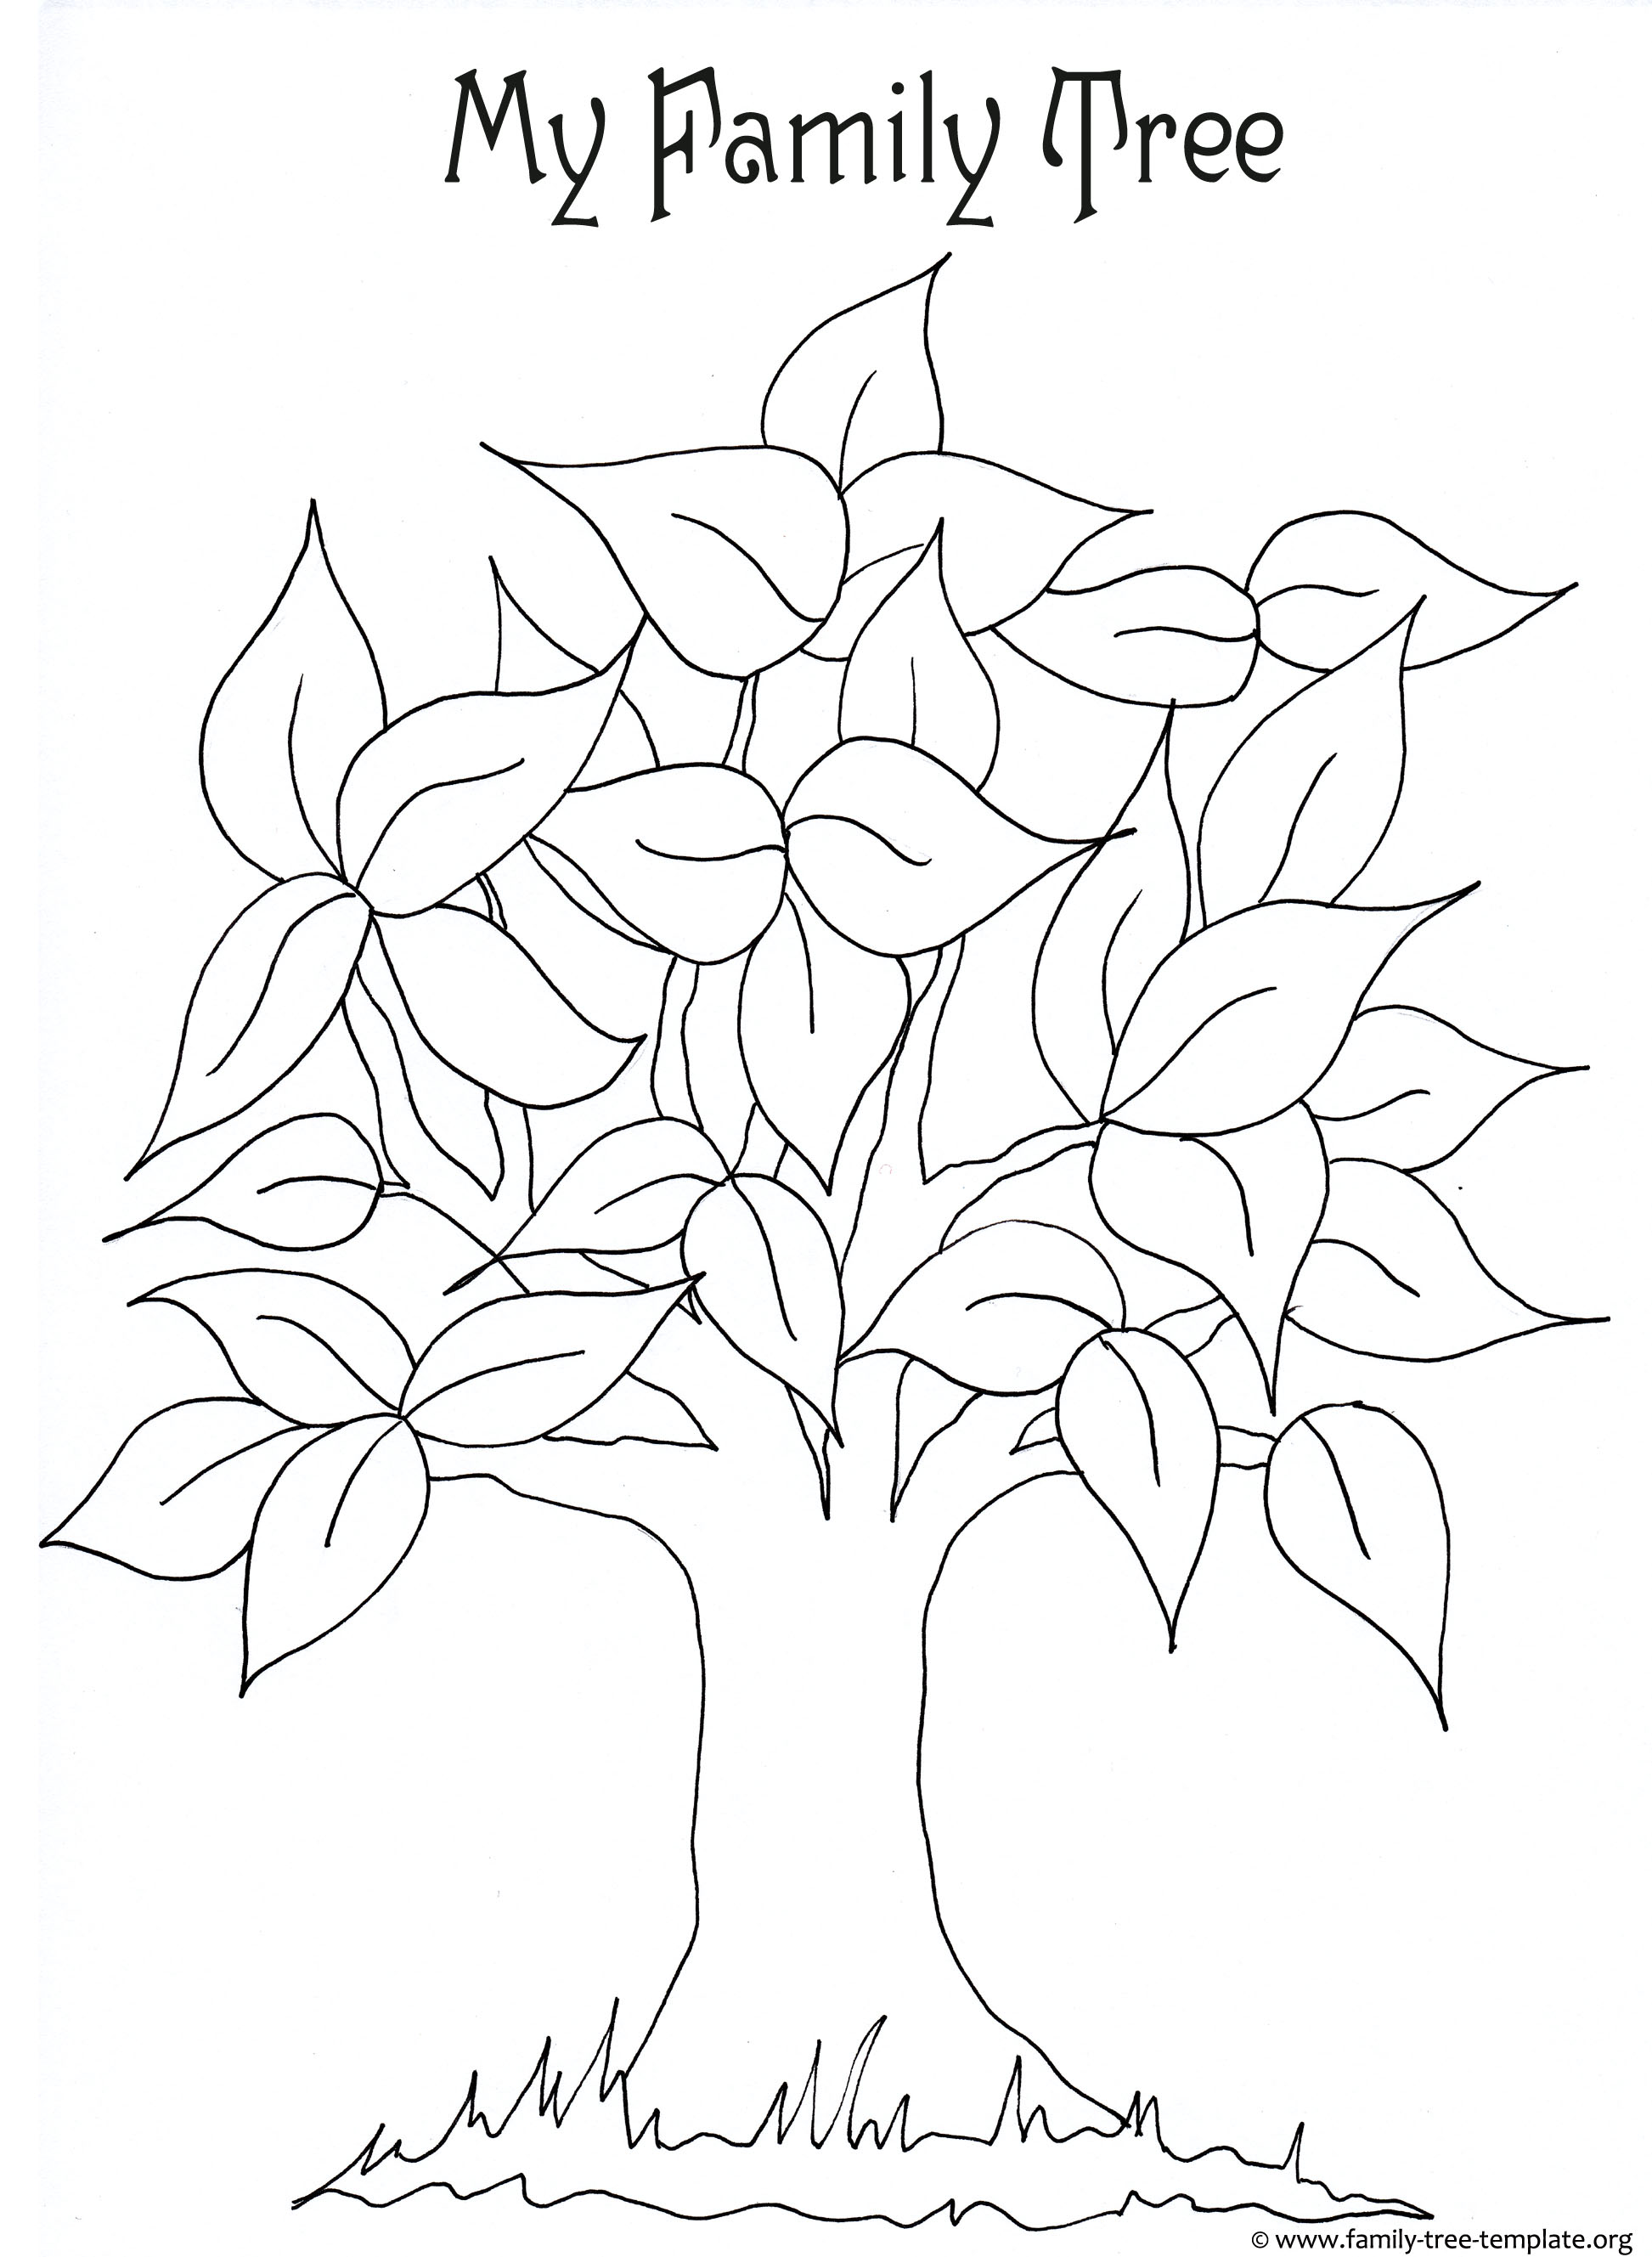 ... printable coloring page for kids with leaves and tree trunk to color